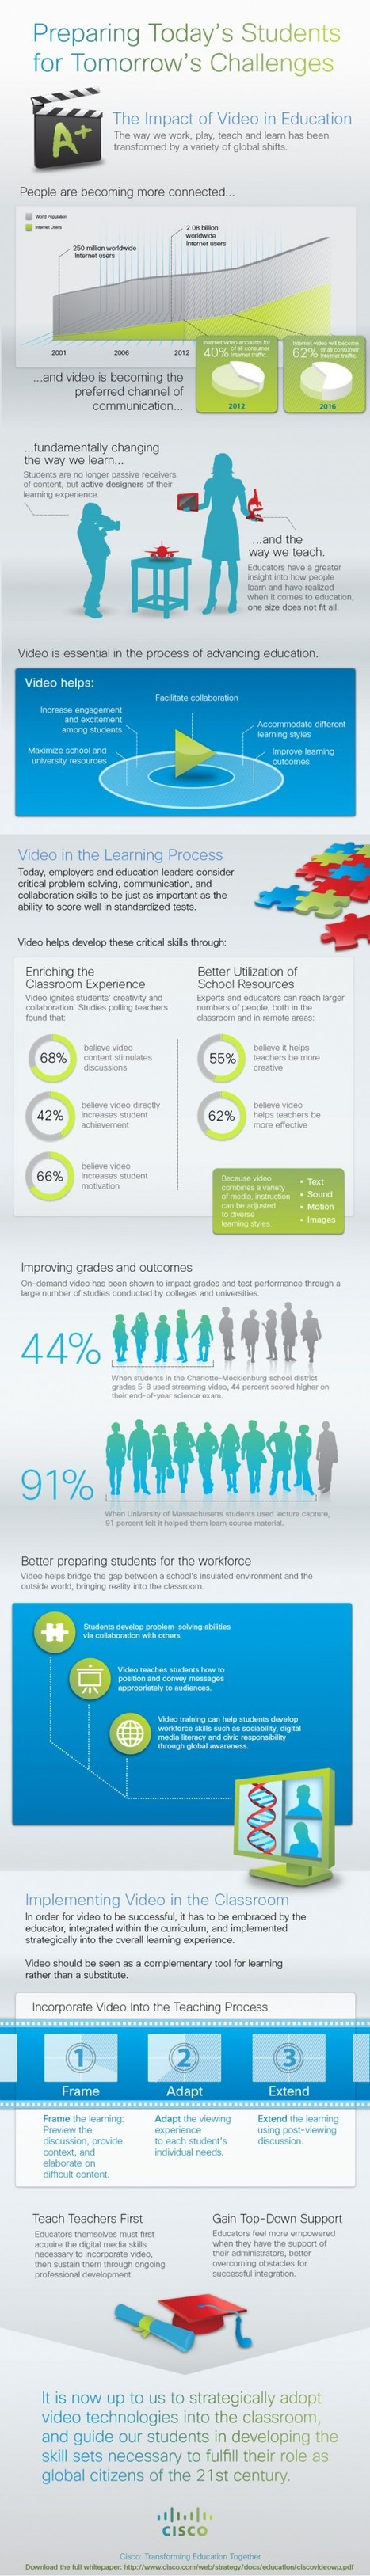 Infographic: The Impact of Video in Education | Digital and Social Media in Education | Scoop.it